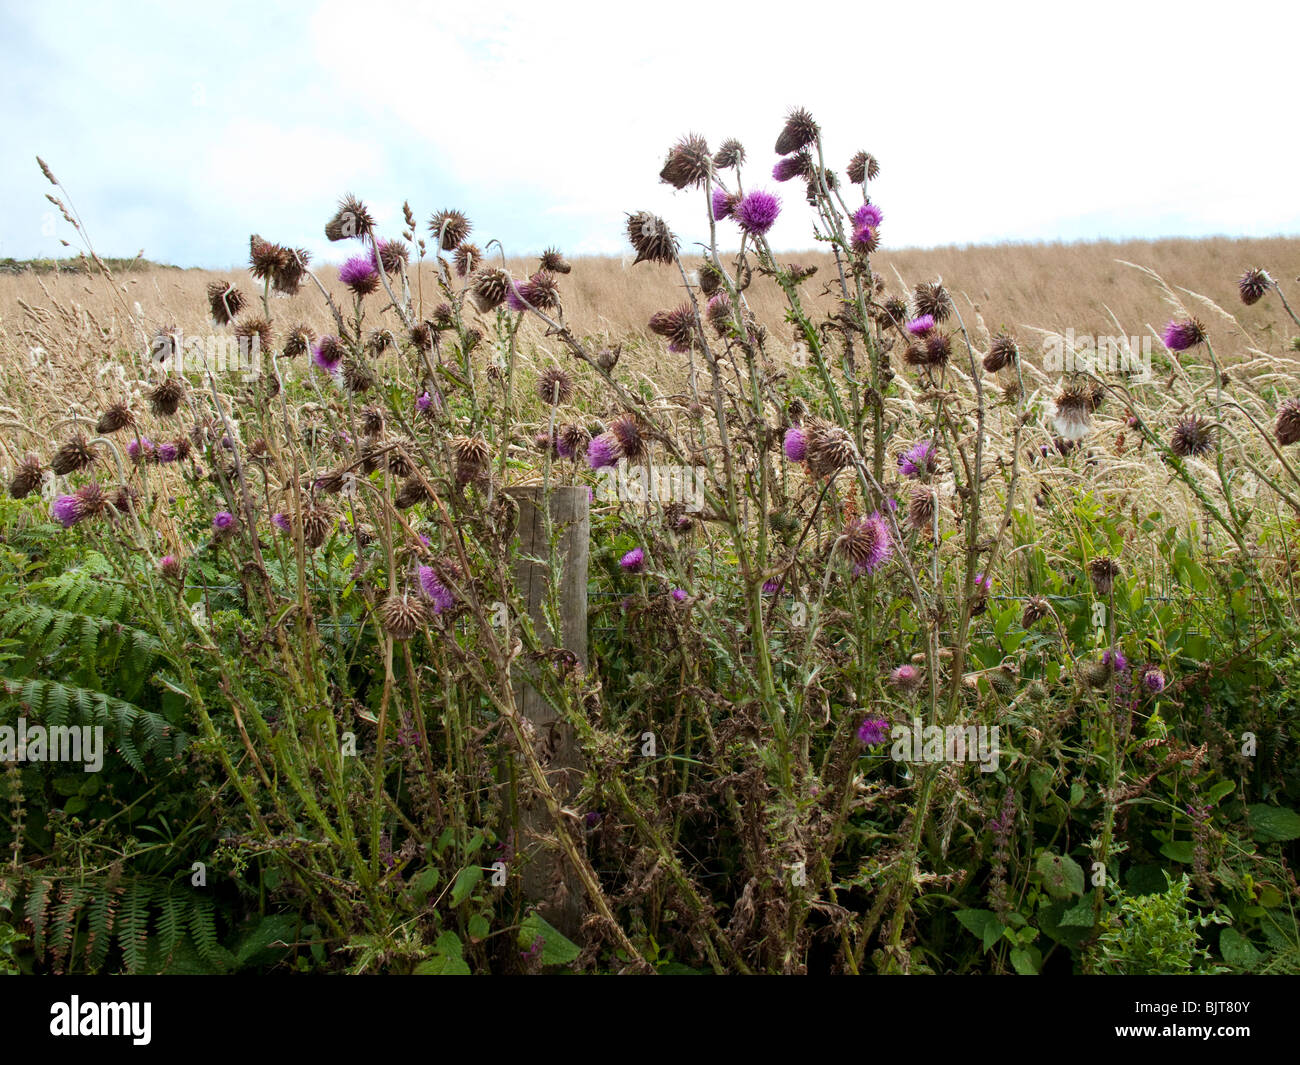 Musk thistle or Nodding thistle (Carduus nutans) - Stock Image